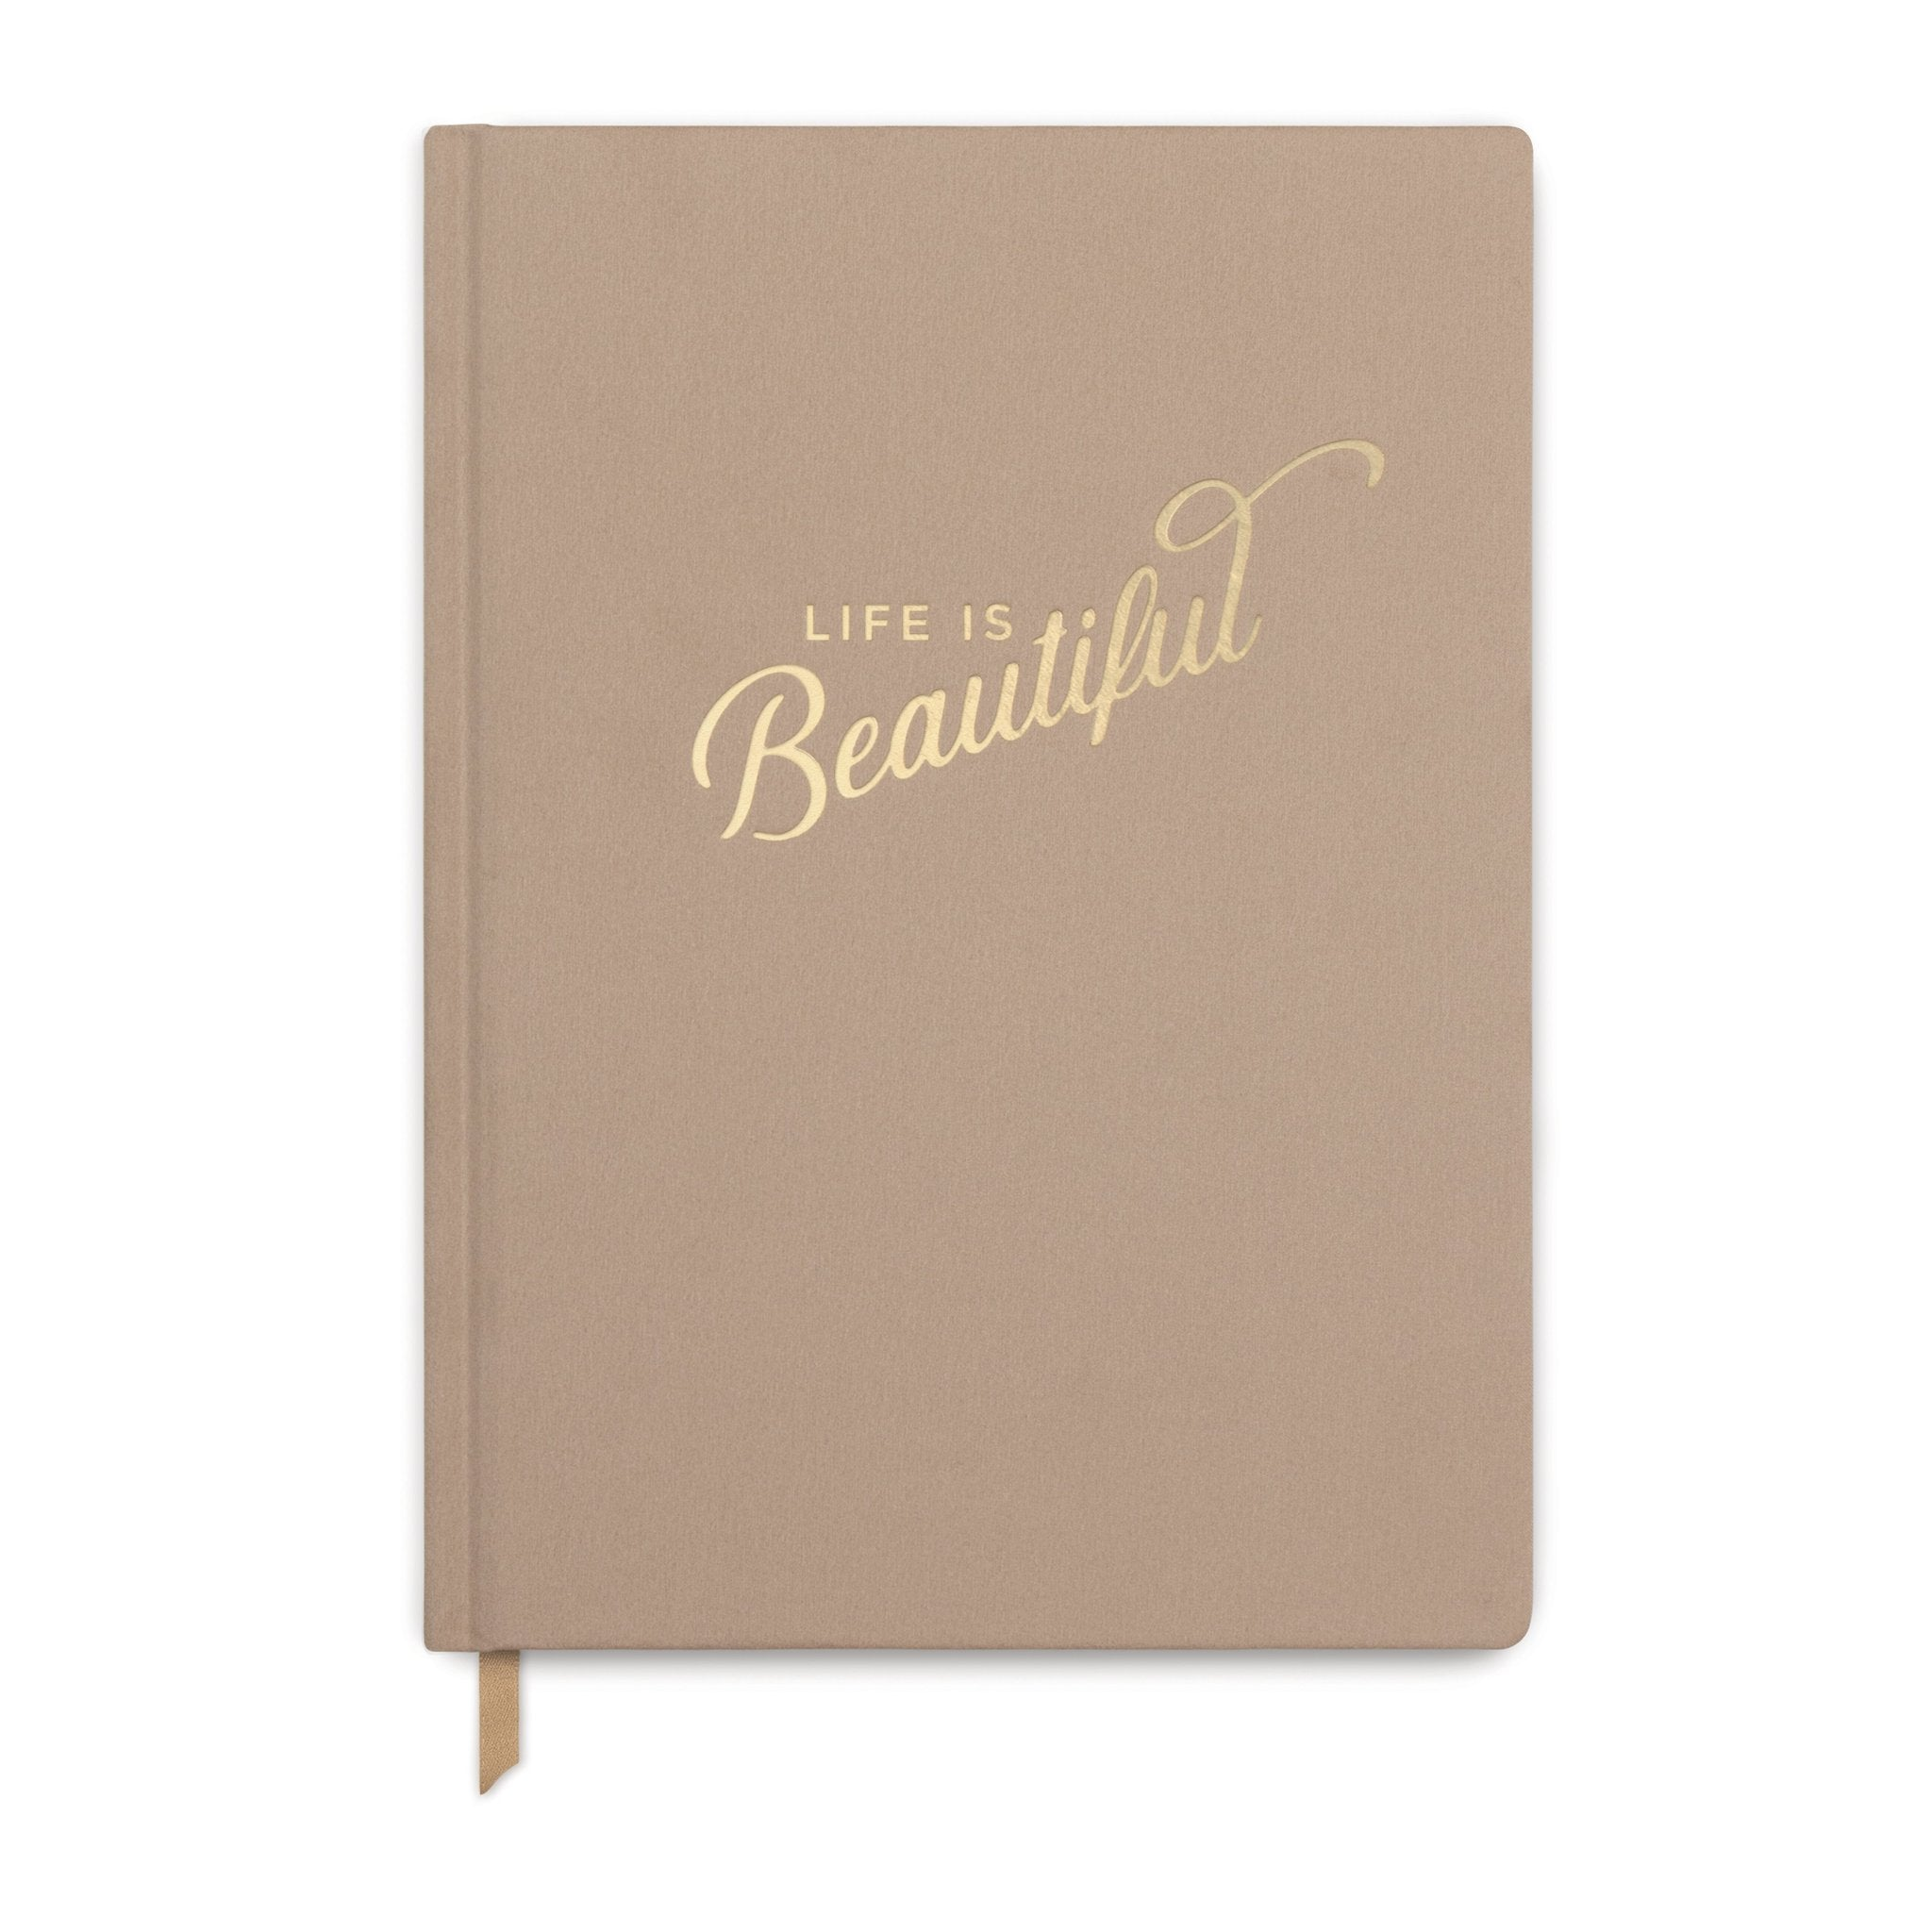 Designworks Ink / Clothbound Notebook (Extra Large) - Life Is Beautiful